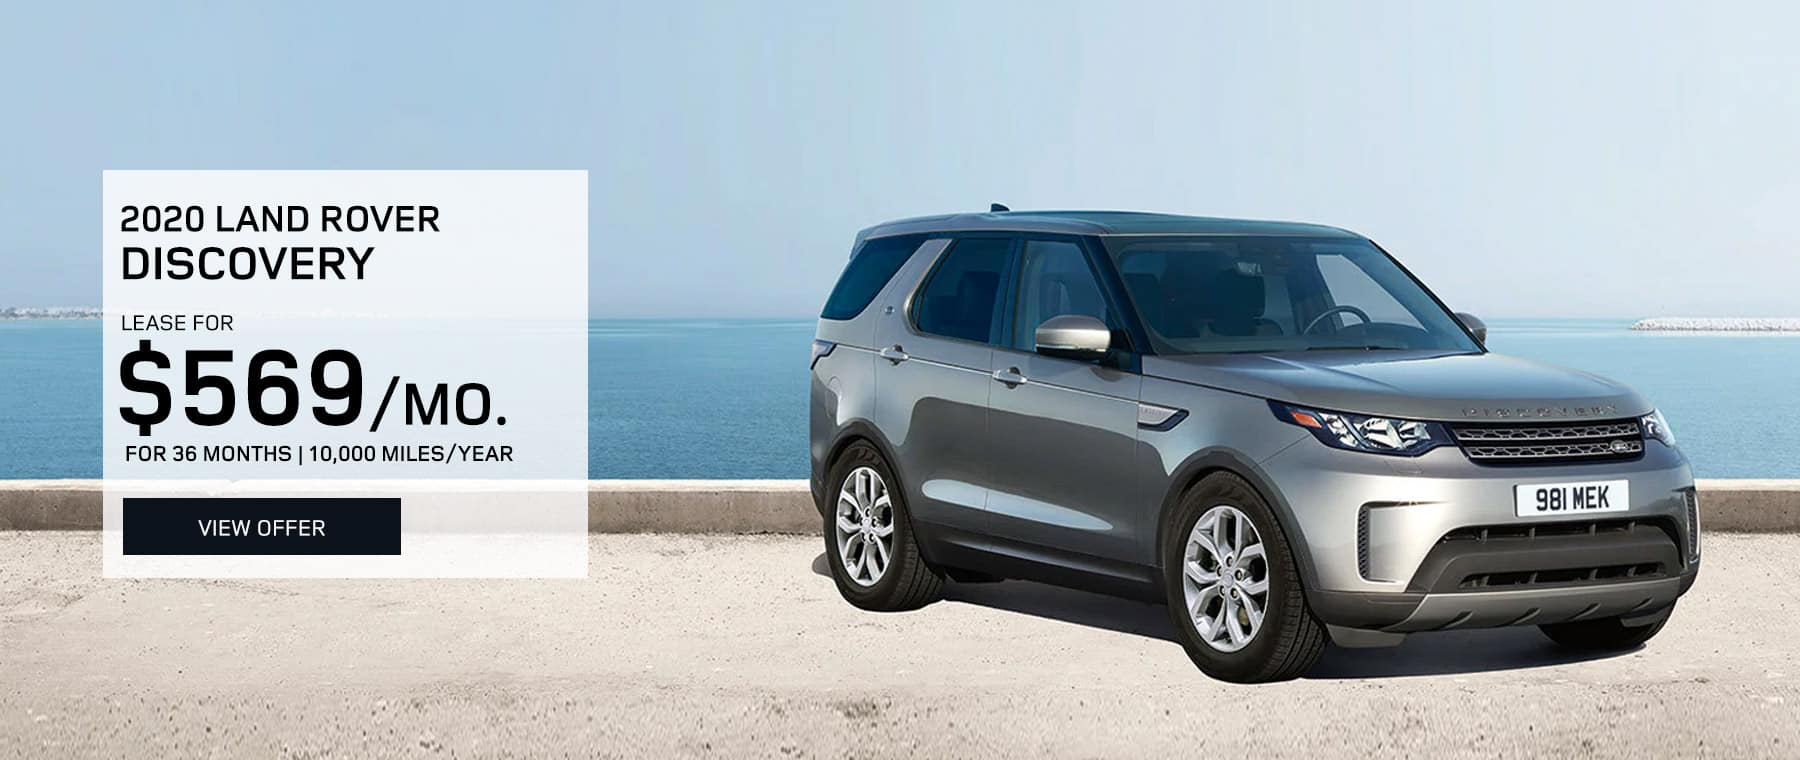 land-rover-discovery-oct-2020